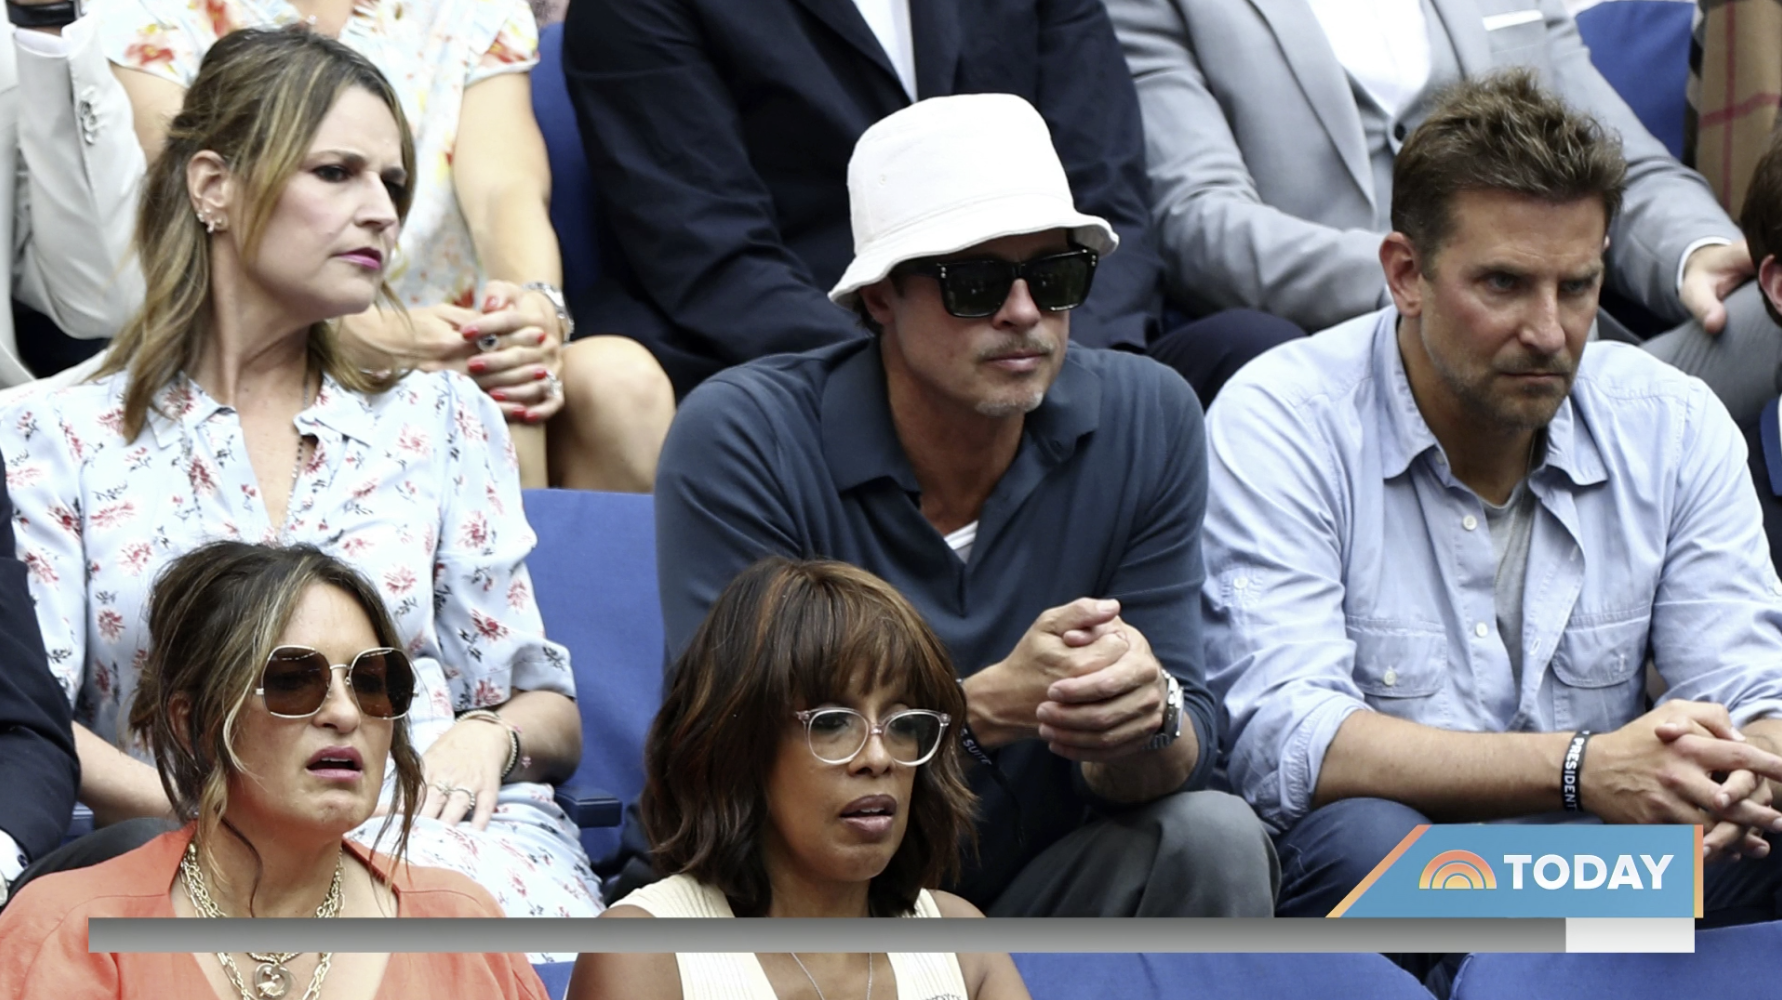 Close-up of Savannah sitting next to Brad with Gayle and Mariska one row down